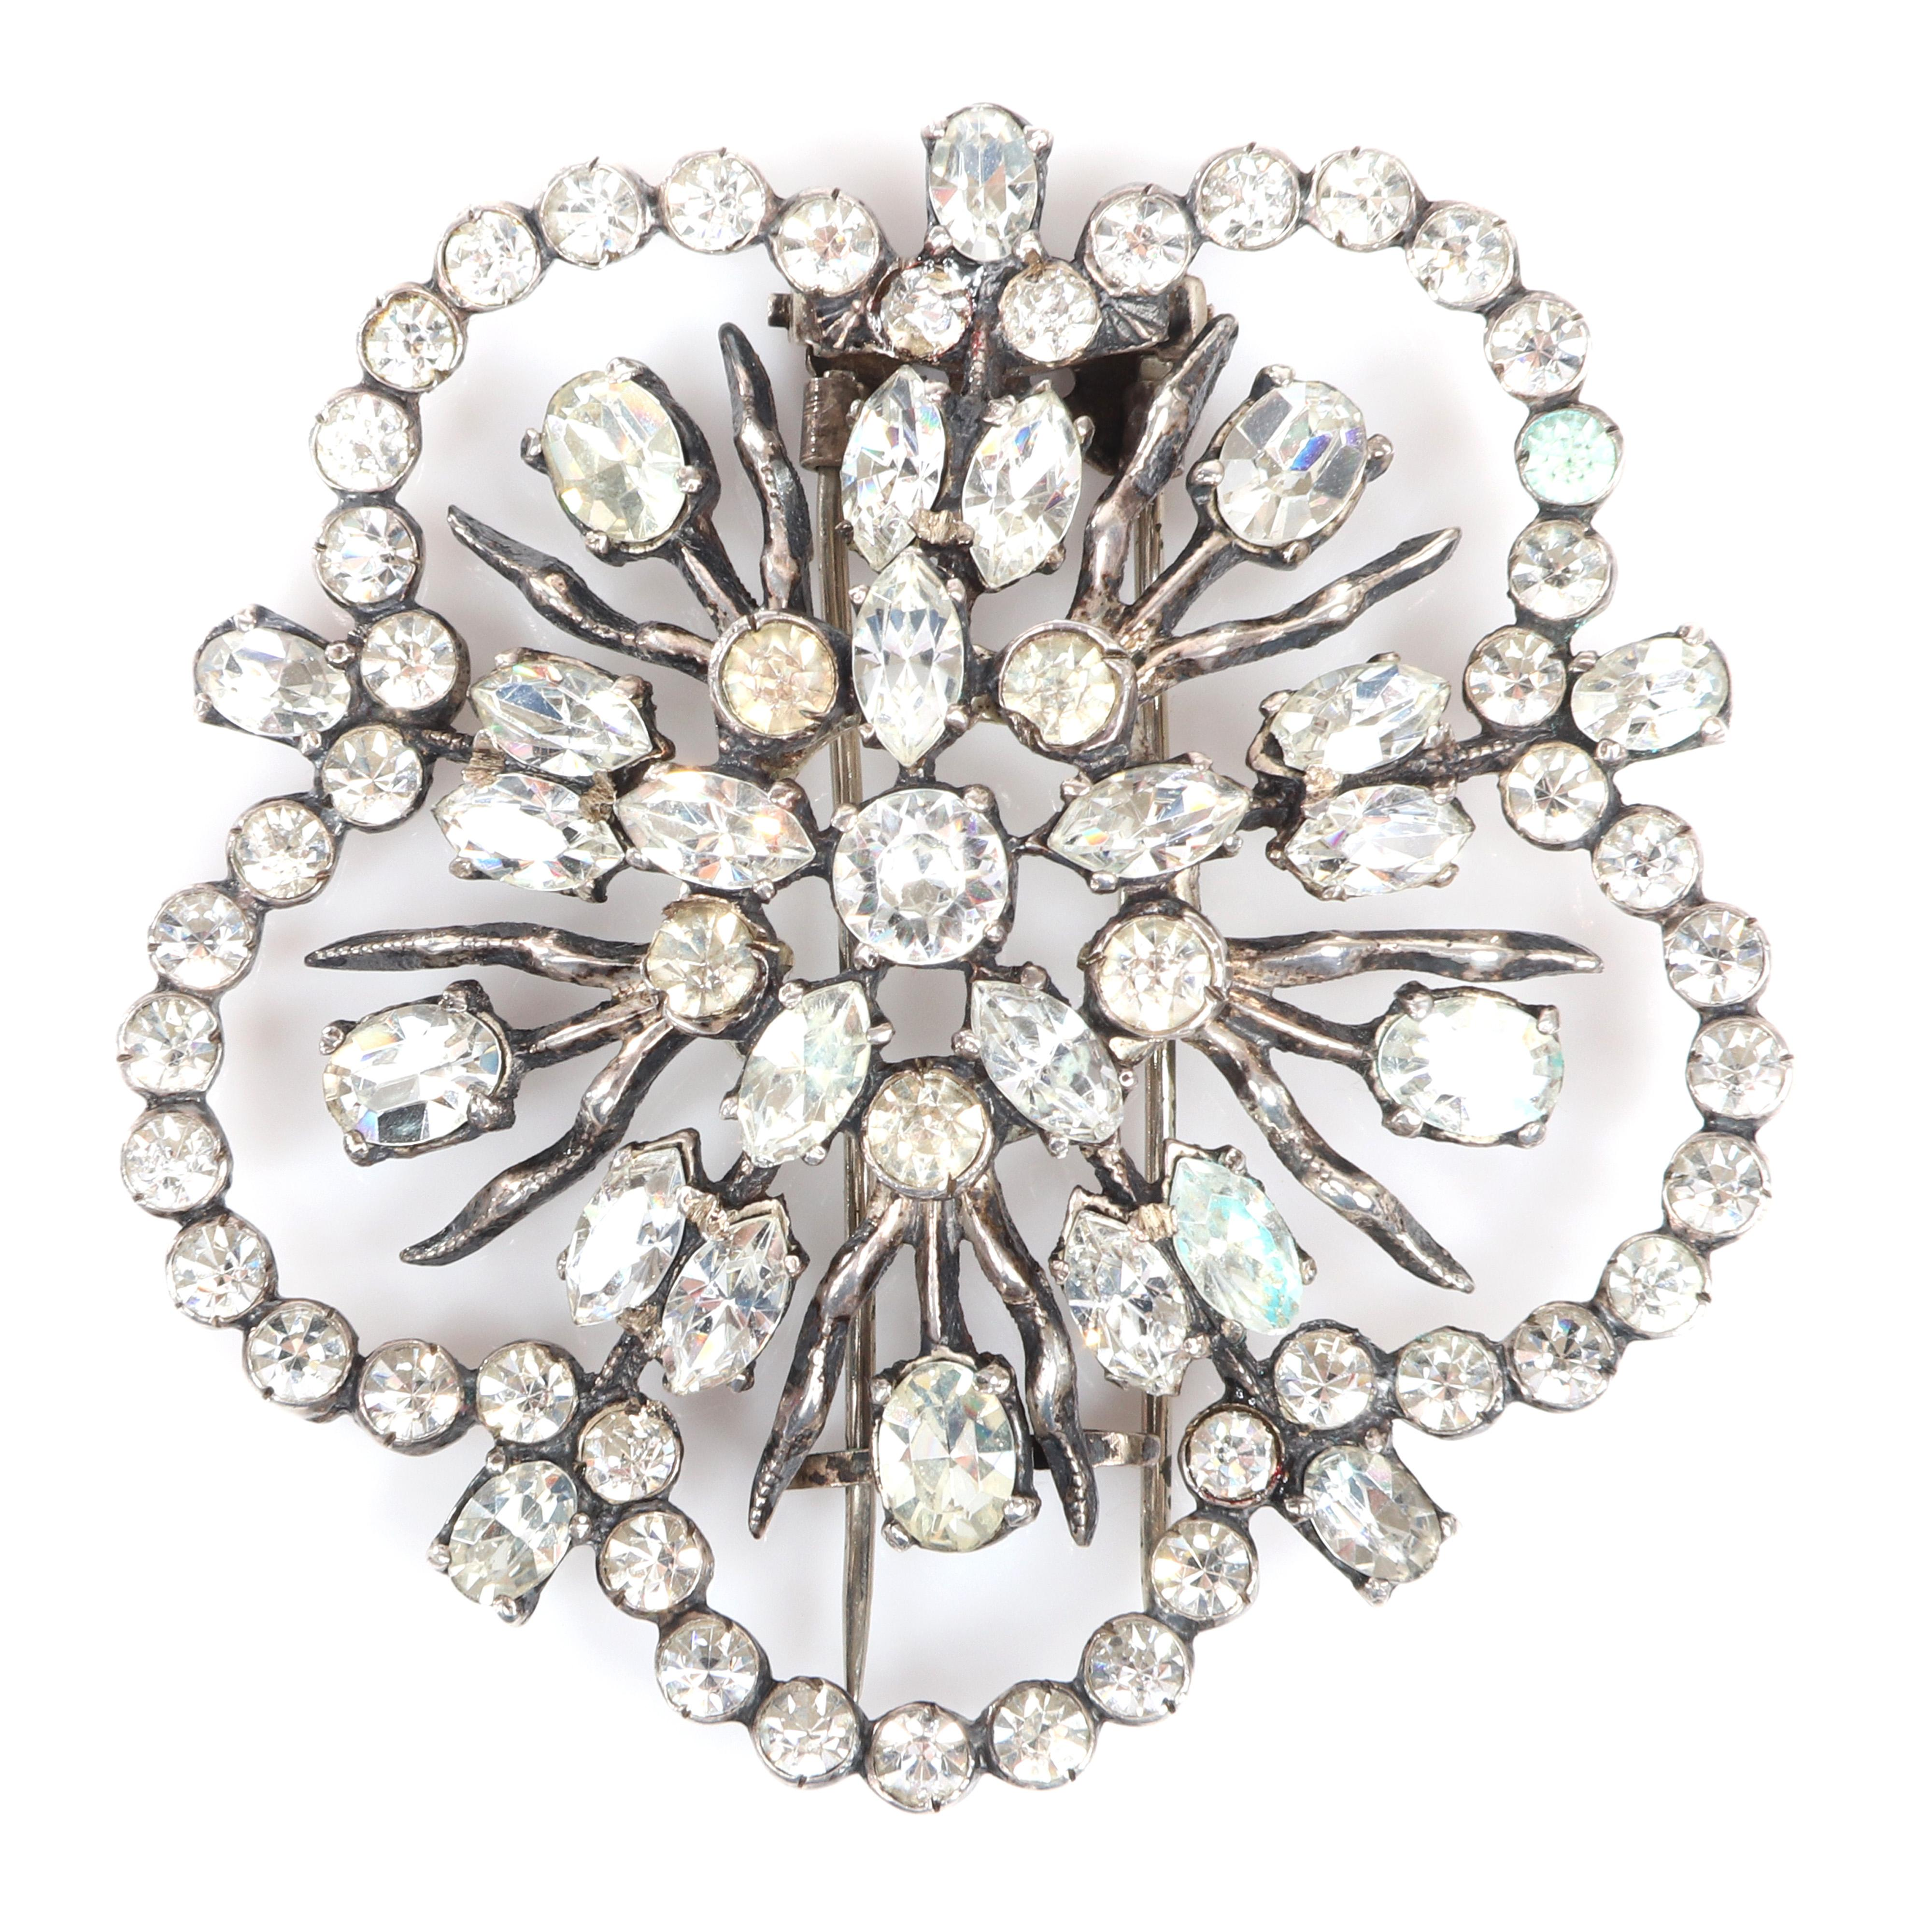 "Eisenberg Original sterling snowflake brooch with clear round, marquise and oval crystals and bezel-set rhinestones, mid-1940s. 2 1/2"" diam."